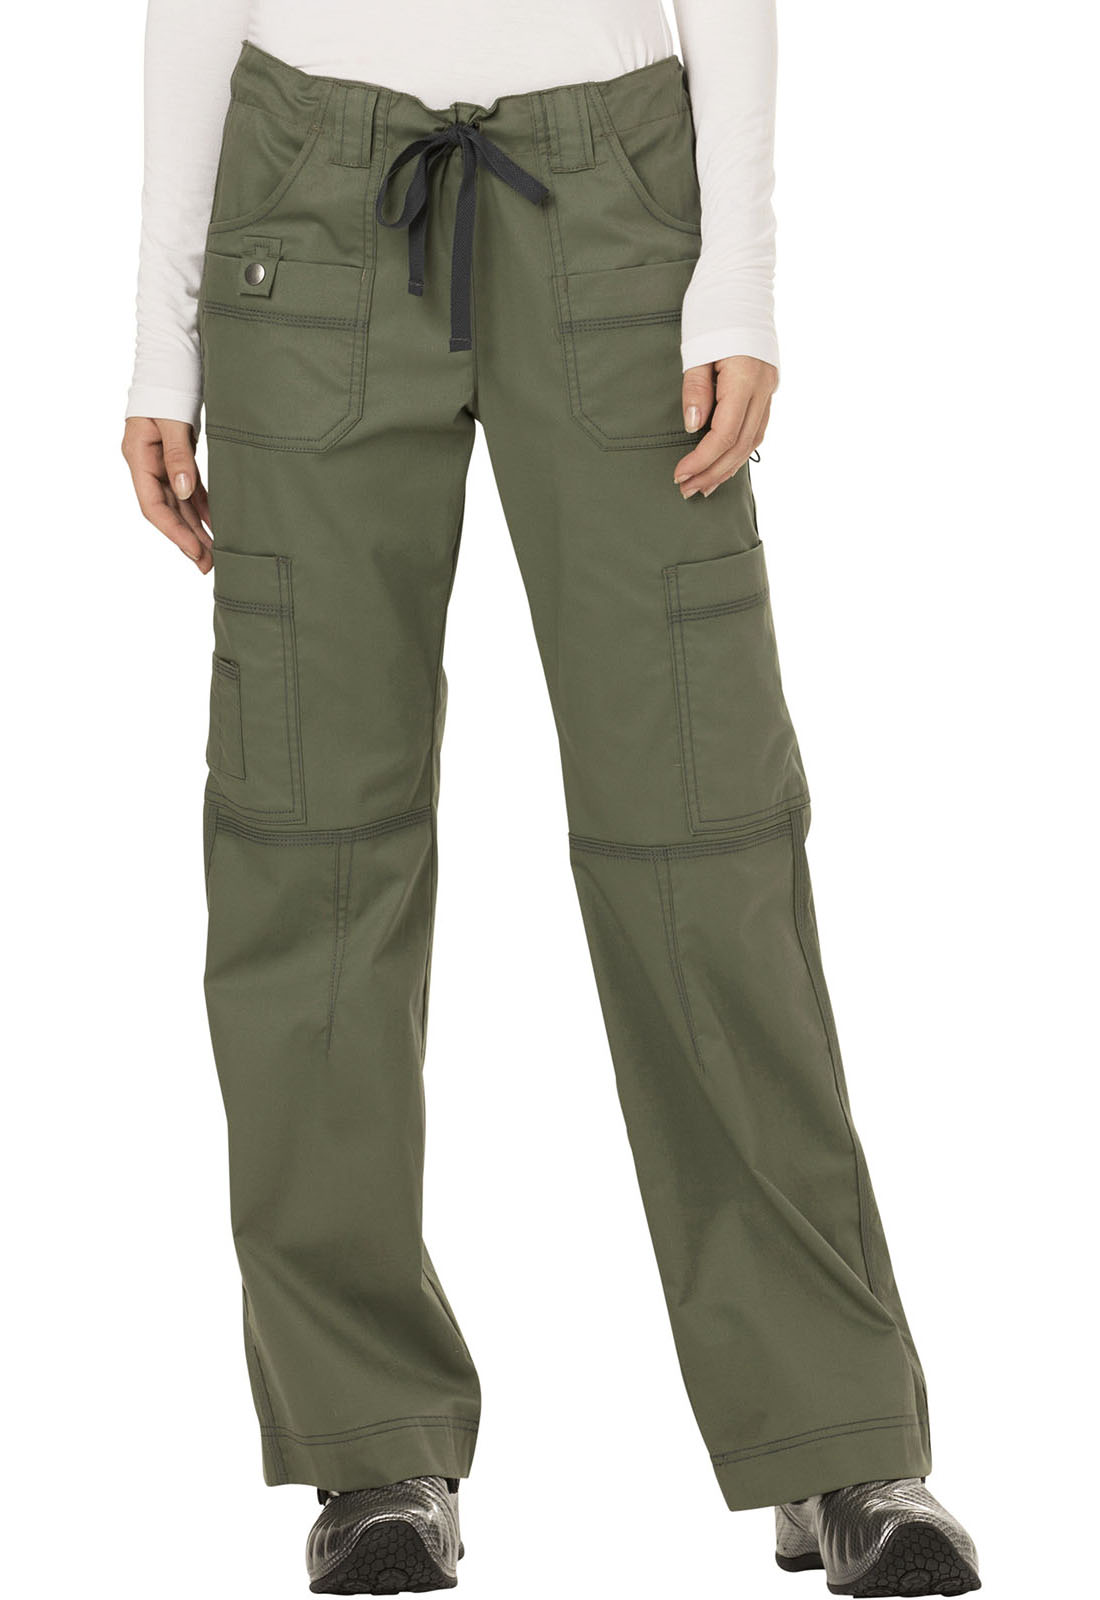 7df5d6c3eb Gen Flex Low Rise Drawstring Cargo Pant in Olive 857455-OLIZ from ...